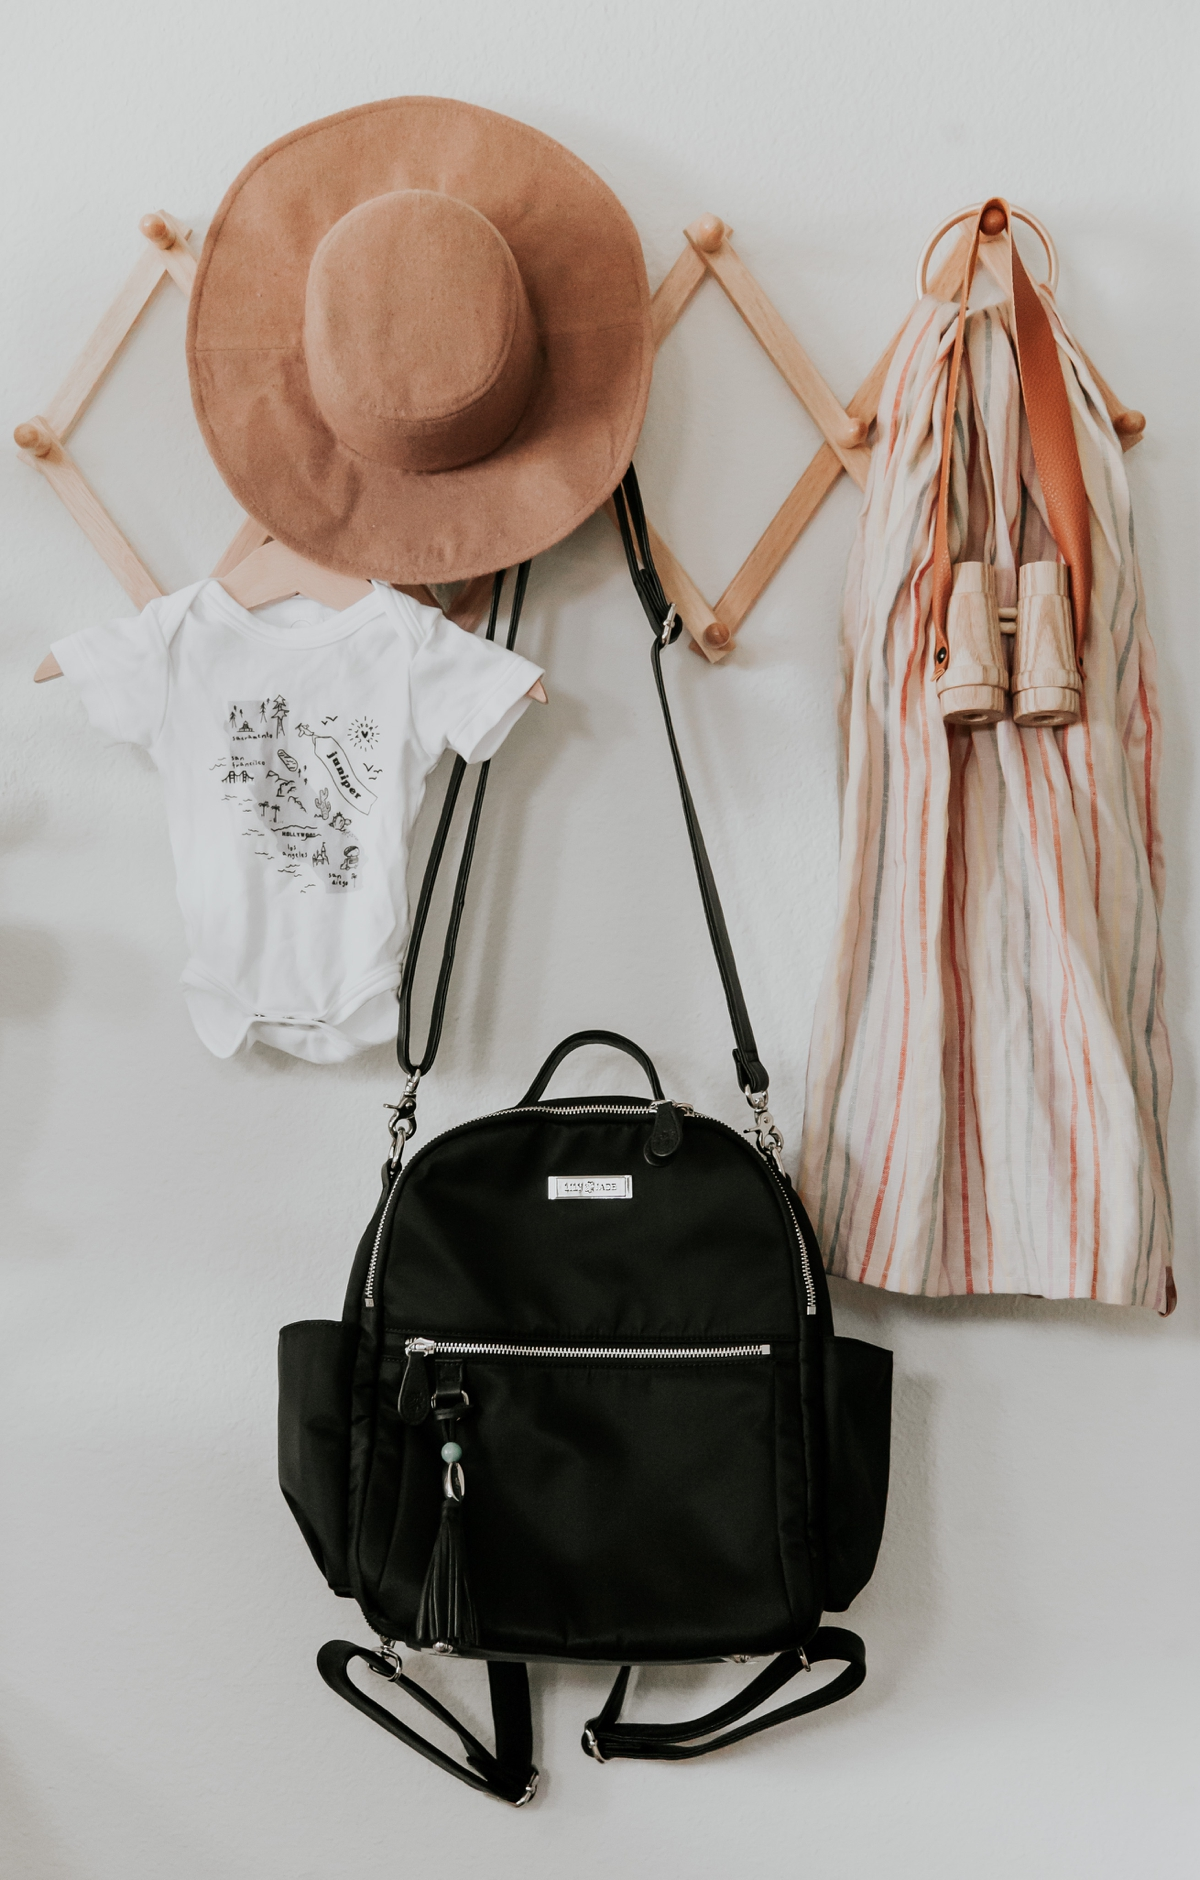 Kandis_Marino_Photography_Lifestyle_Lily_Jade_Diaper_Bag_Influencer_Abassador_Baby_Mom_Blogger_Mommy_Blog_Newborn_Pregnancy_0077.jpg